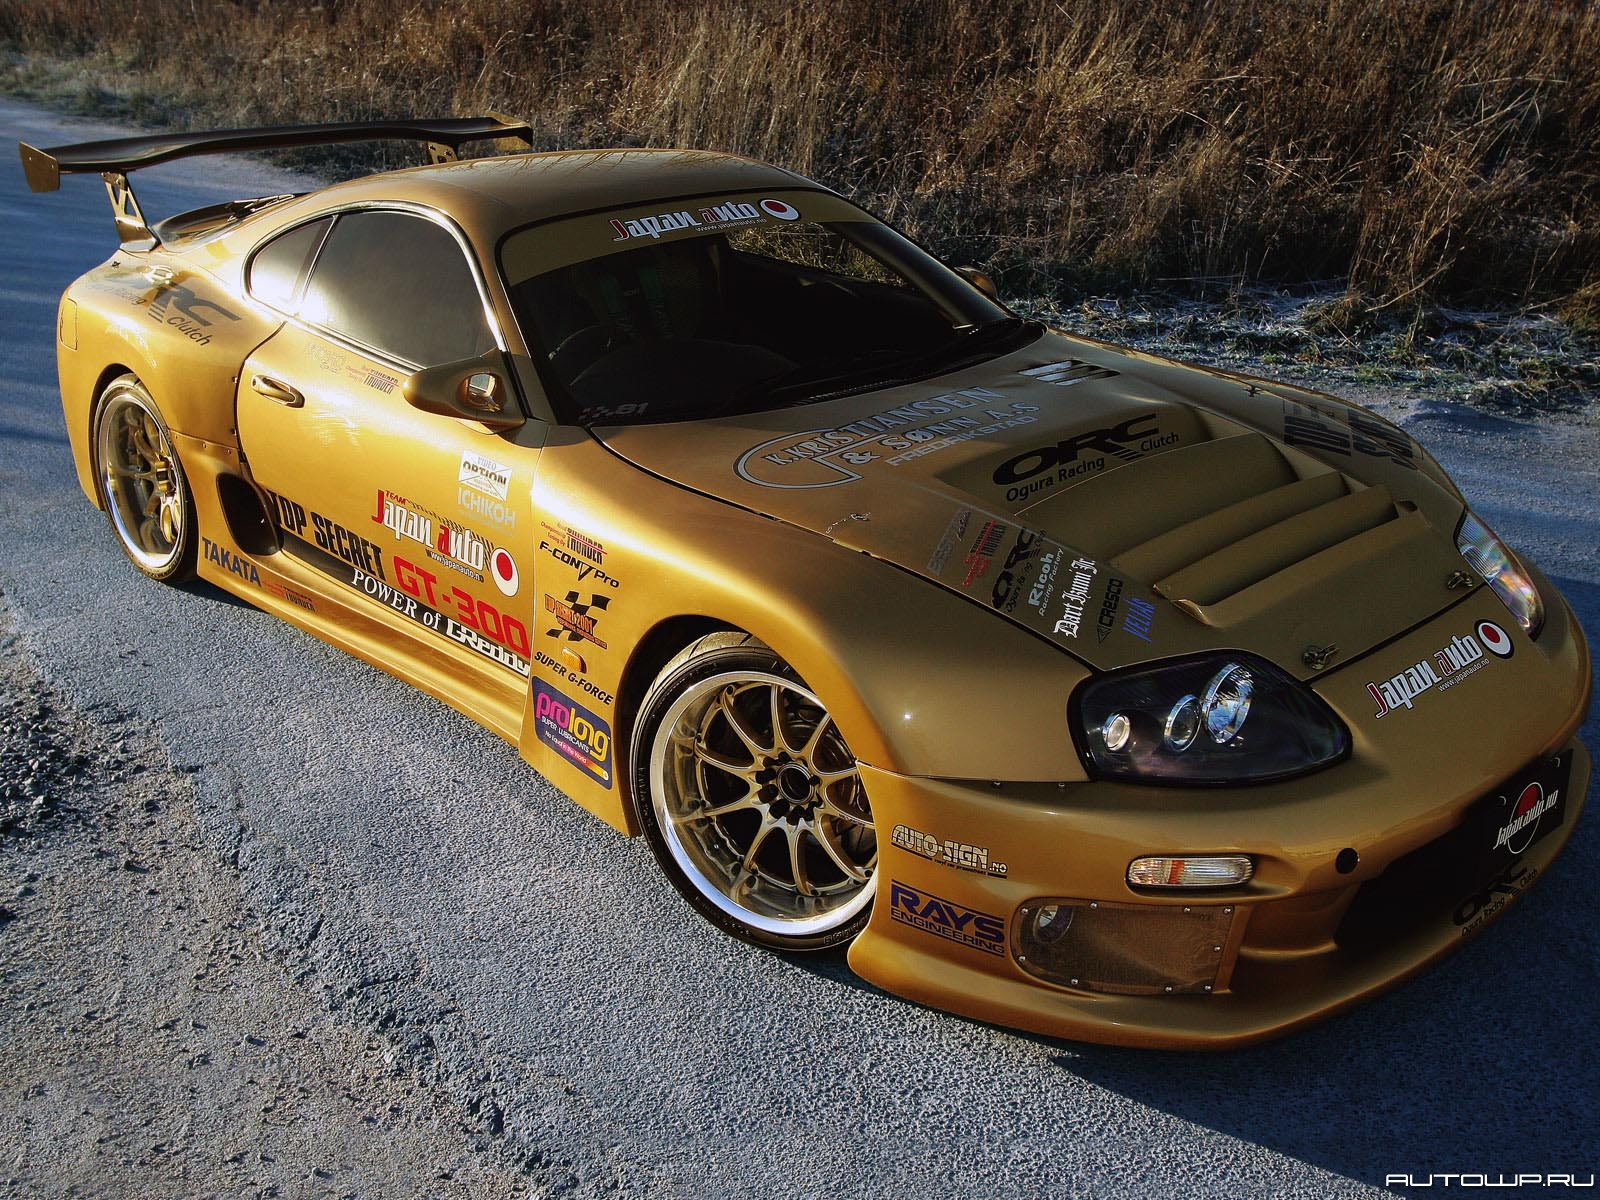 Toyota Supra (tuning) photos - PhotoGallery with 12 pics| CarsBase.com